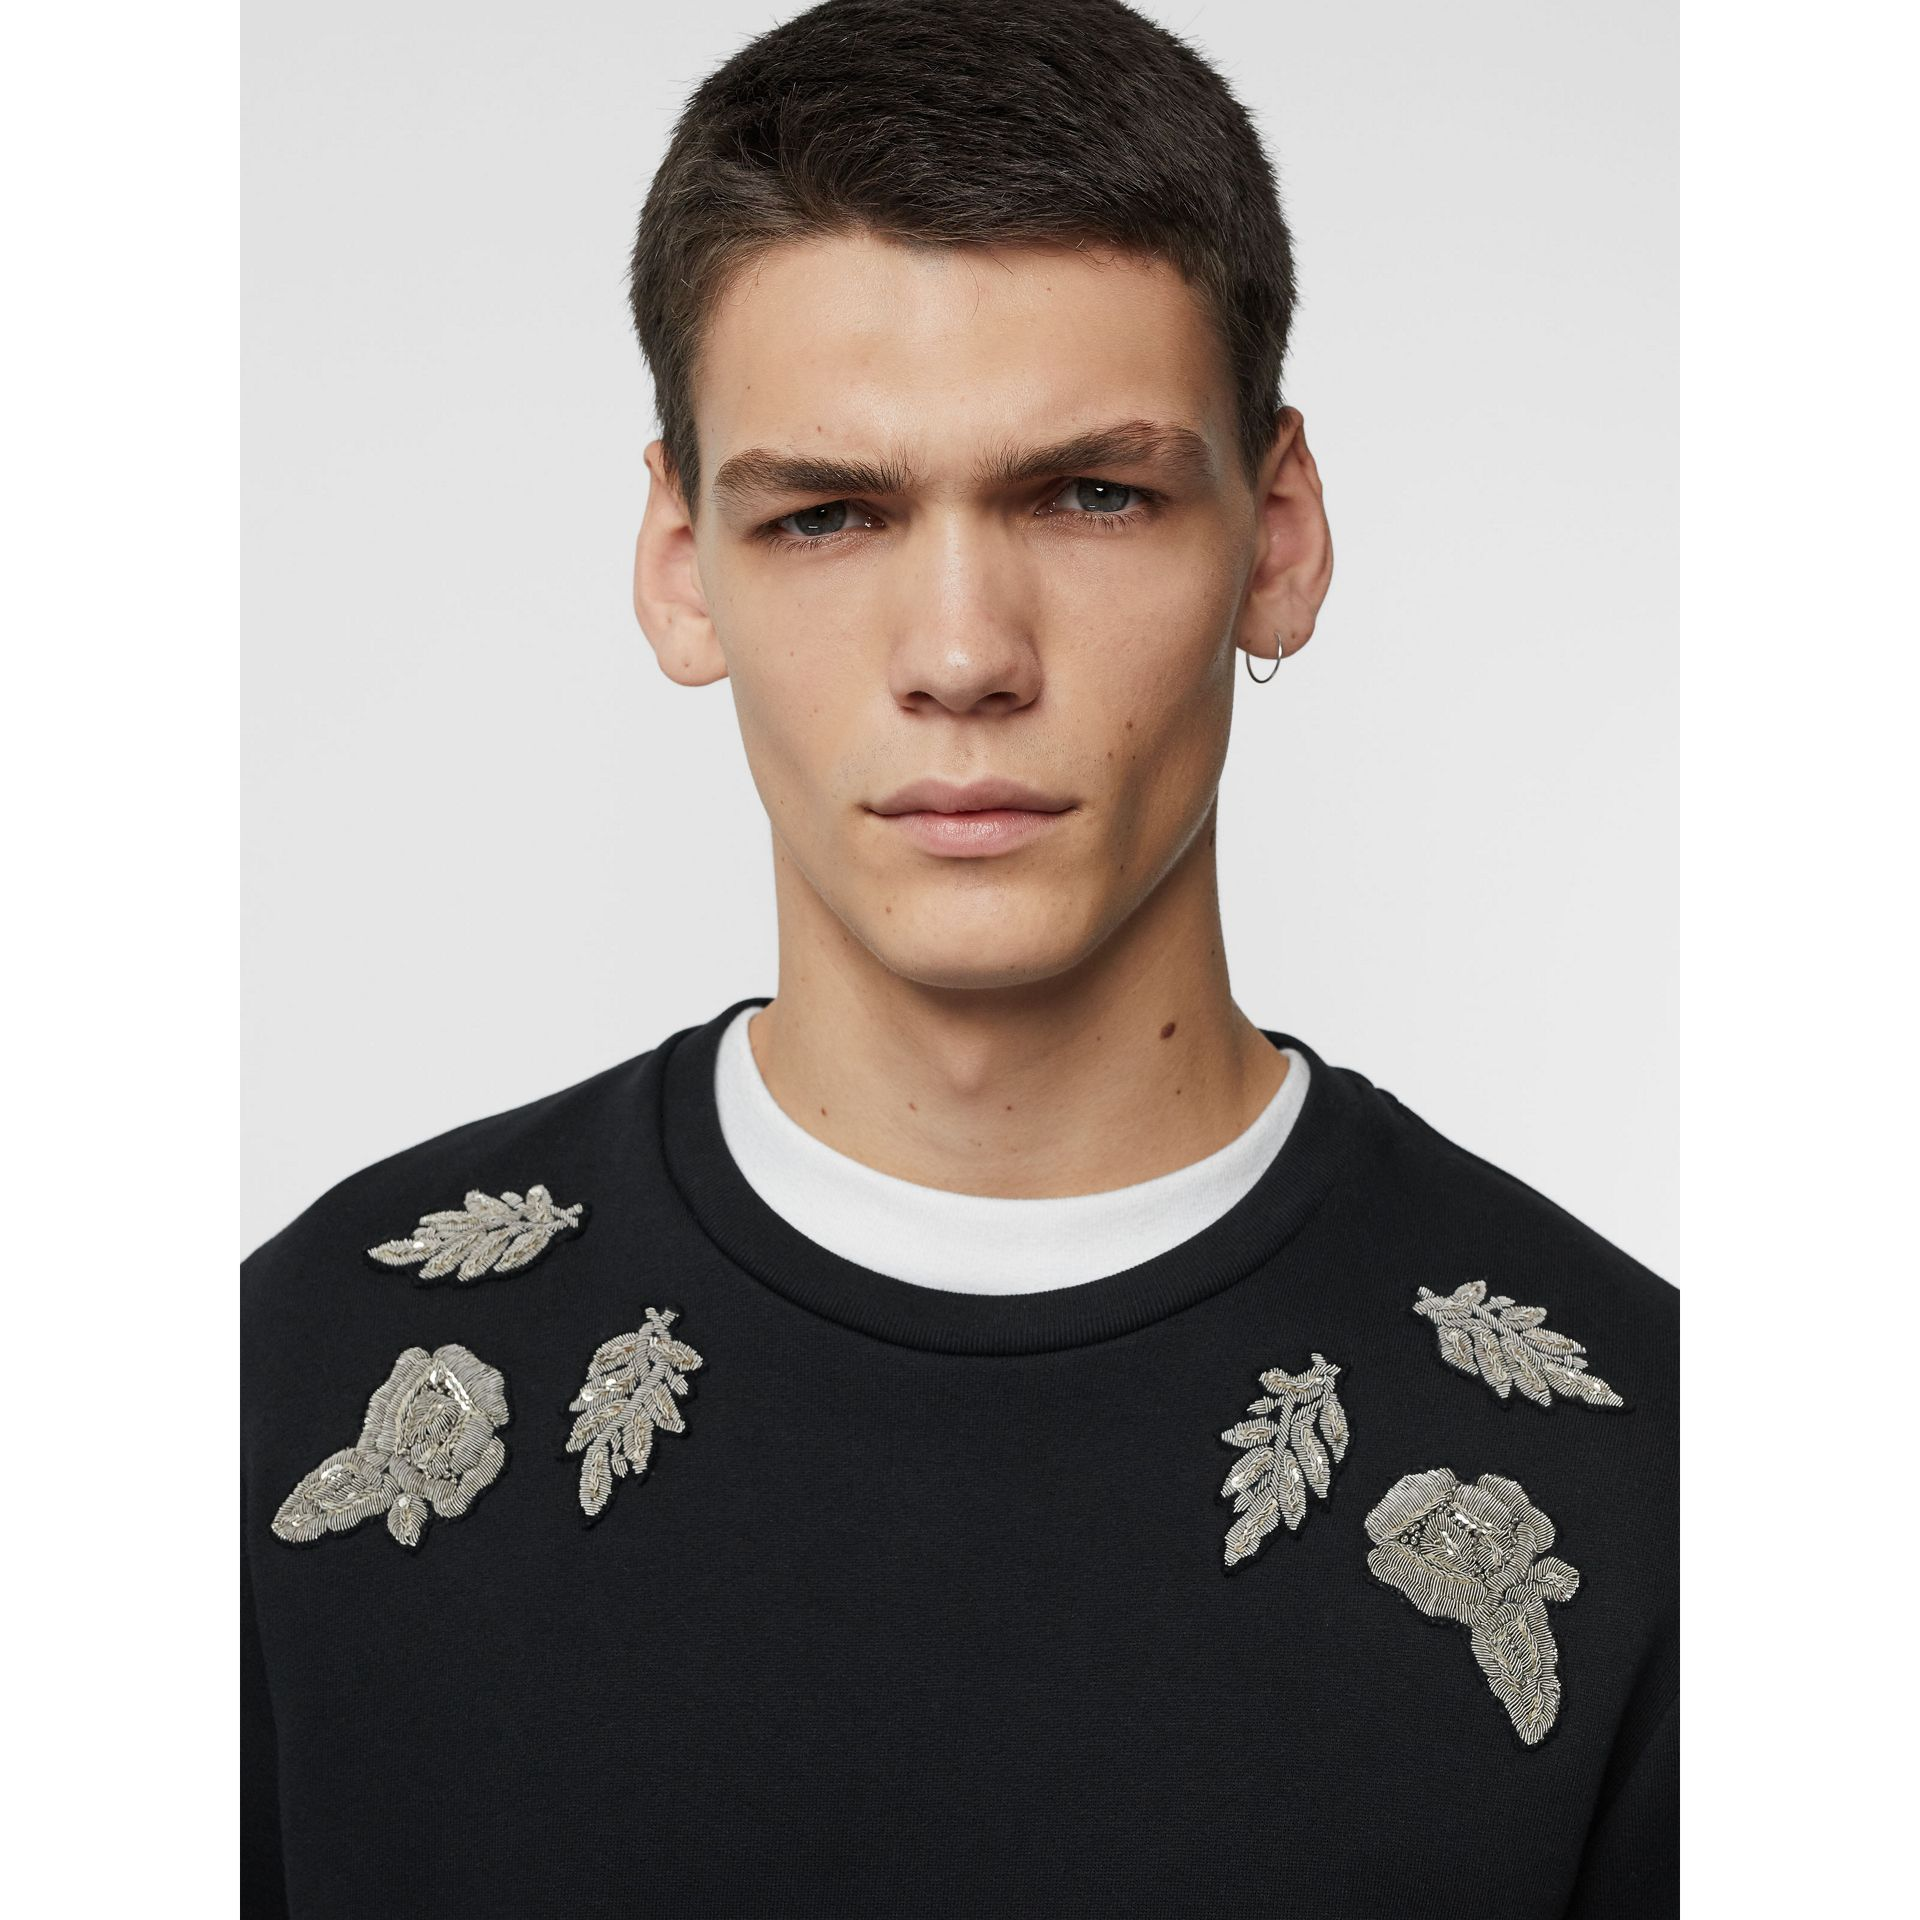 Bullion Floral Cotton Blend Sweatshirt in Black - Men | Burberry - gallery image 1